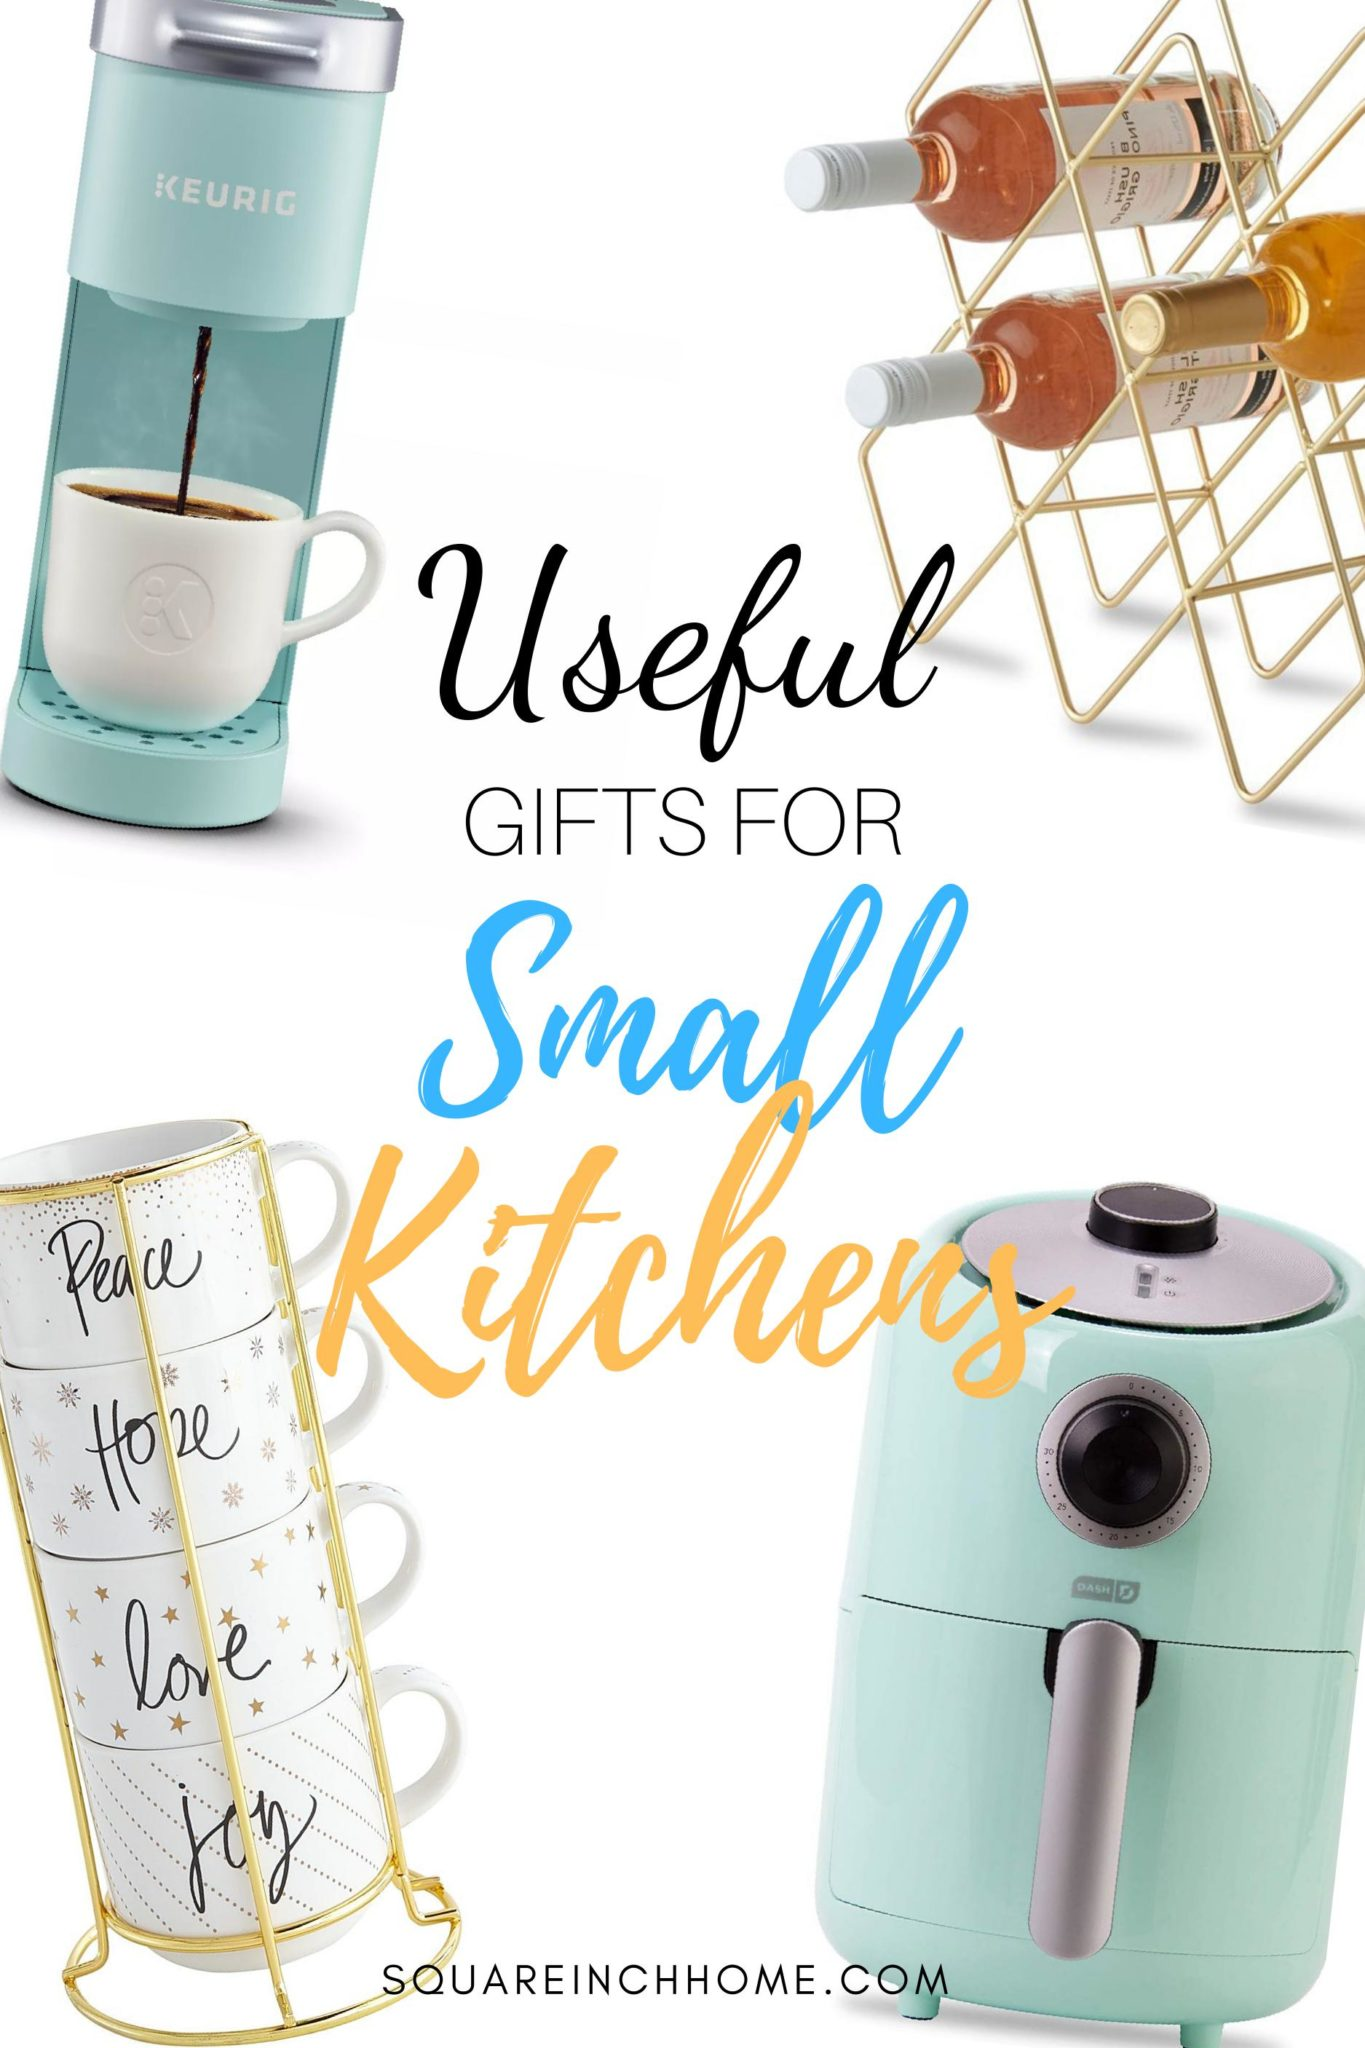 USEFUL GIFTS FOR SMALL KITCHEN